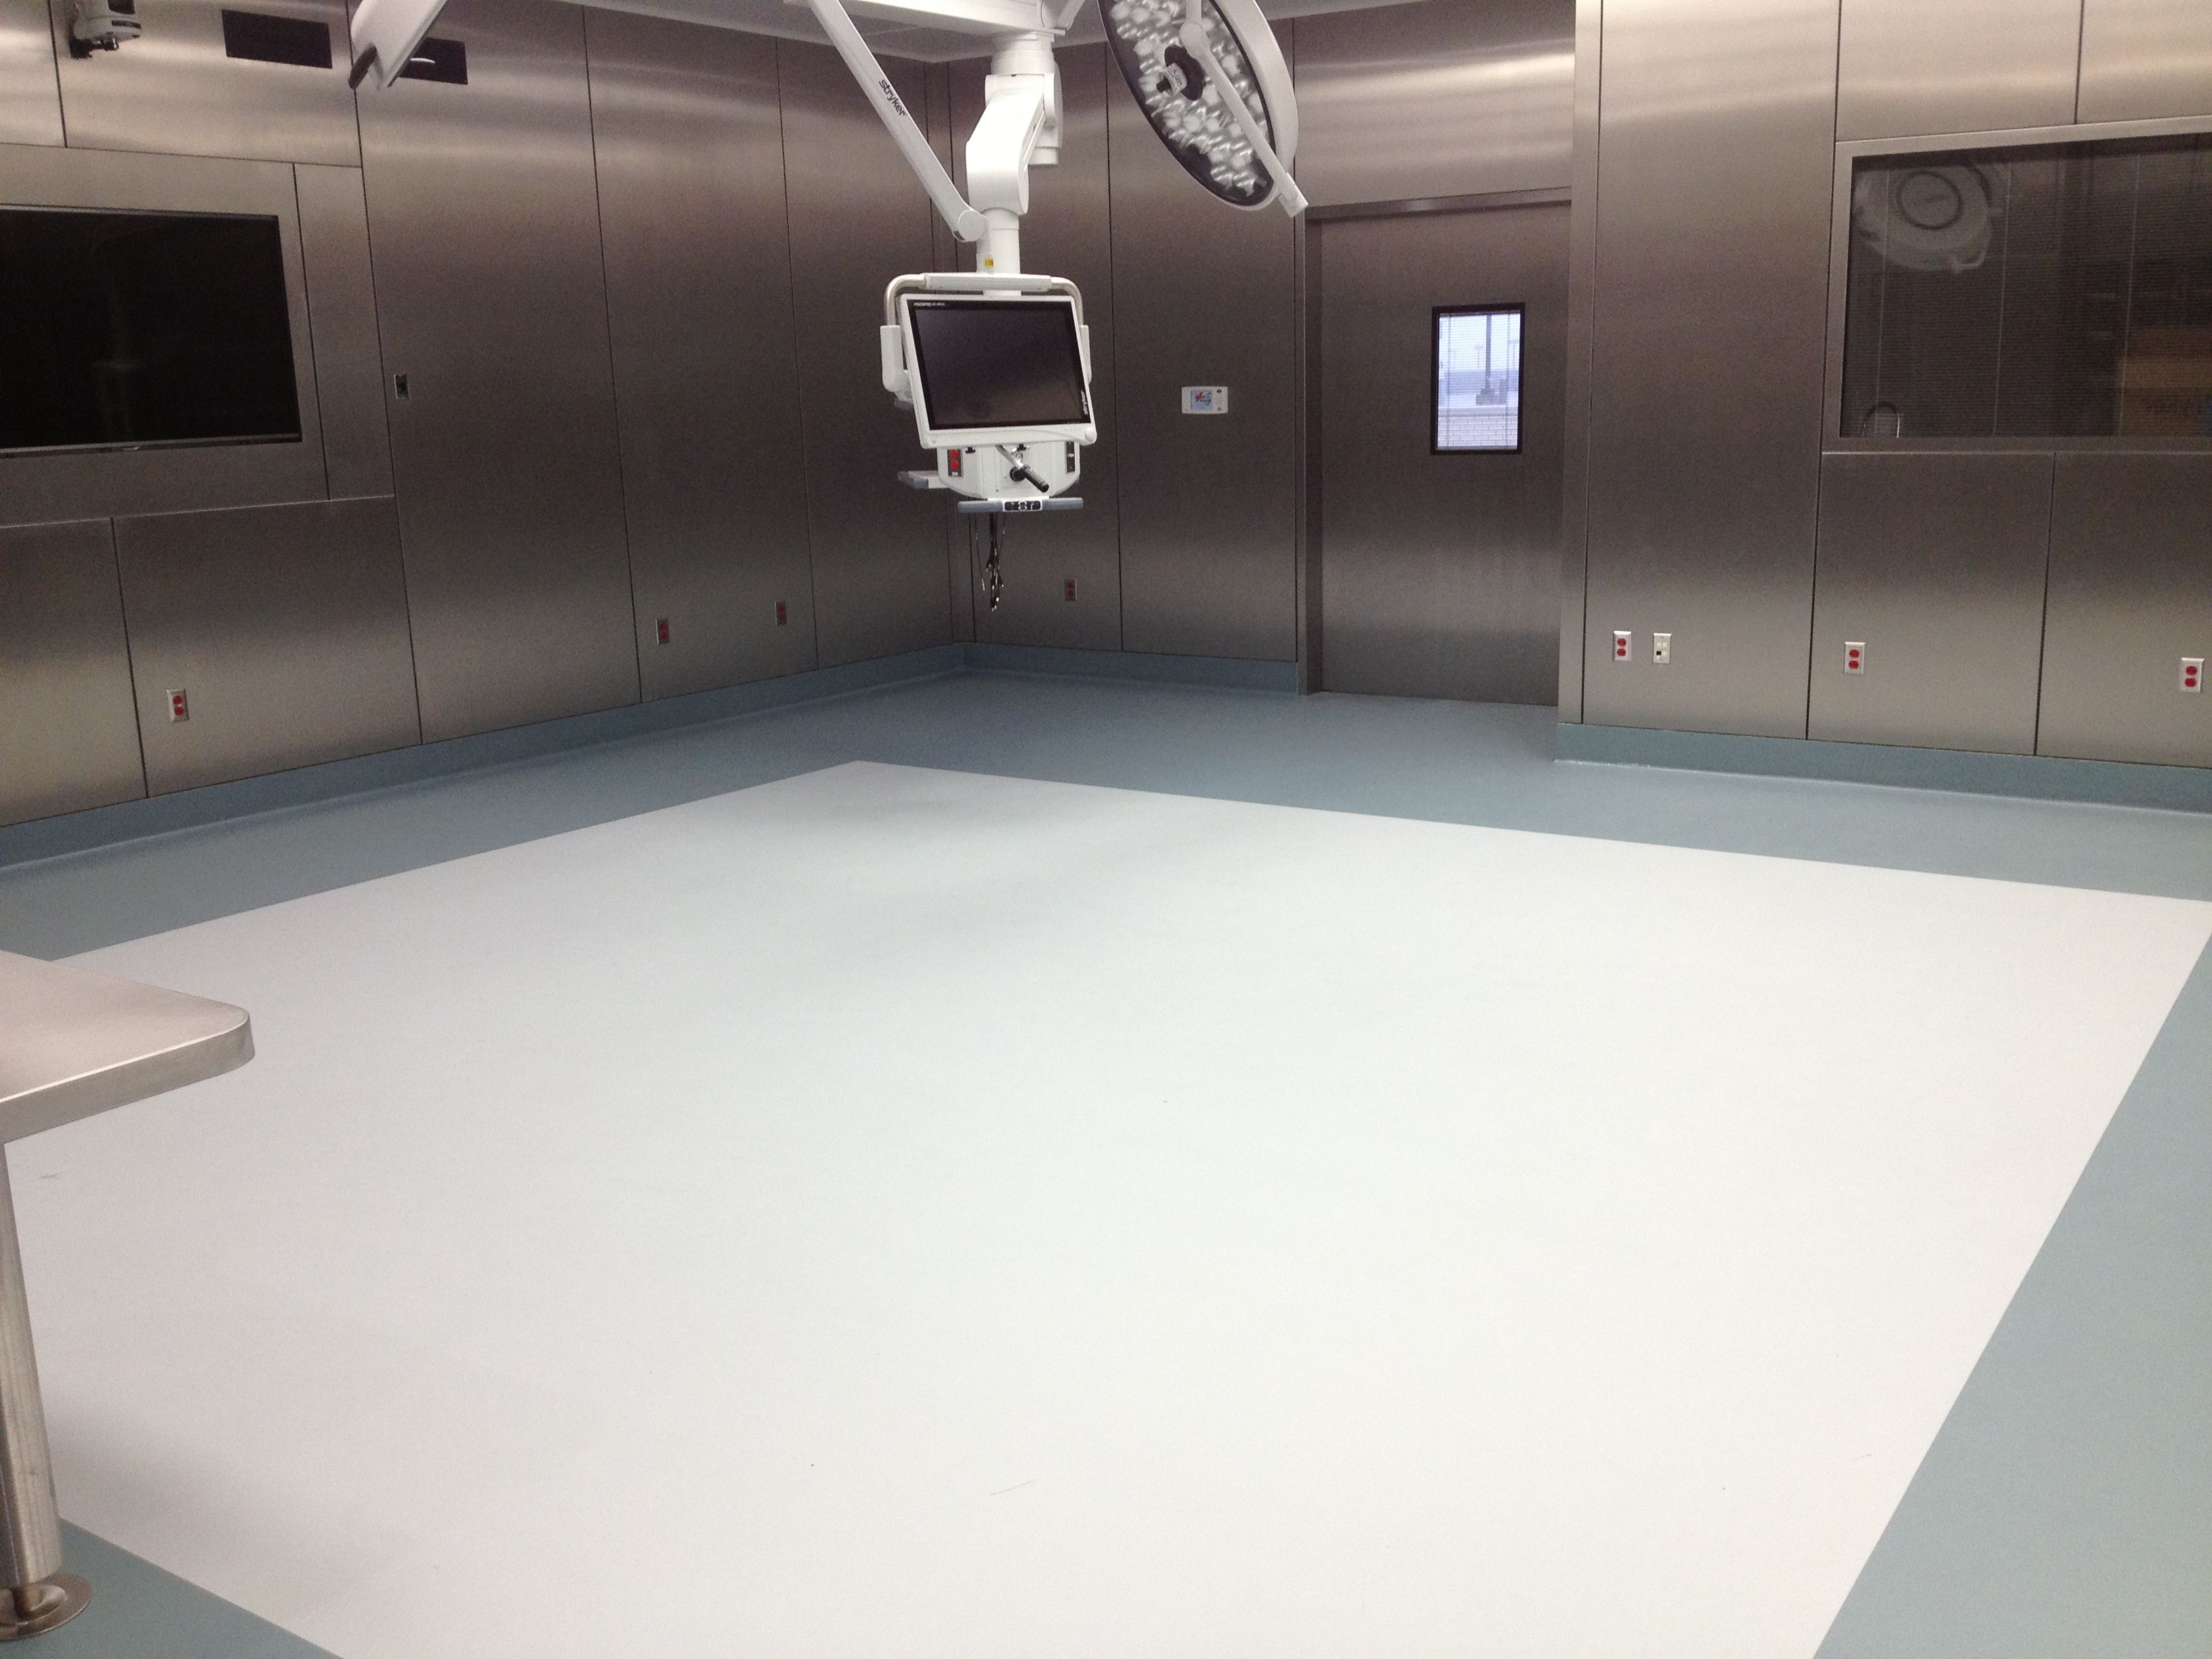 Stonhardu0027s Seamless Flooring Systems Are Ideal For Sterile Fields,  Especially Hospital ORu0027s